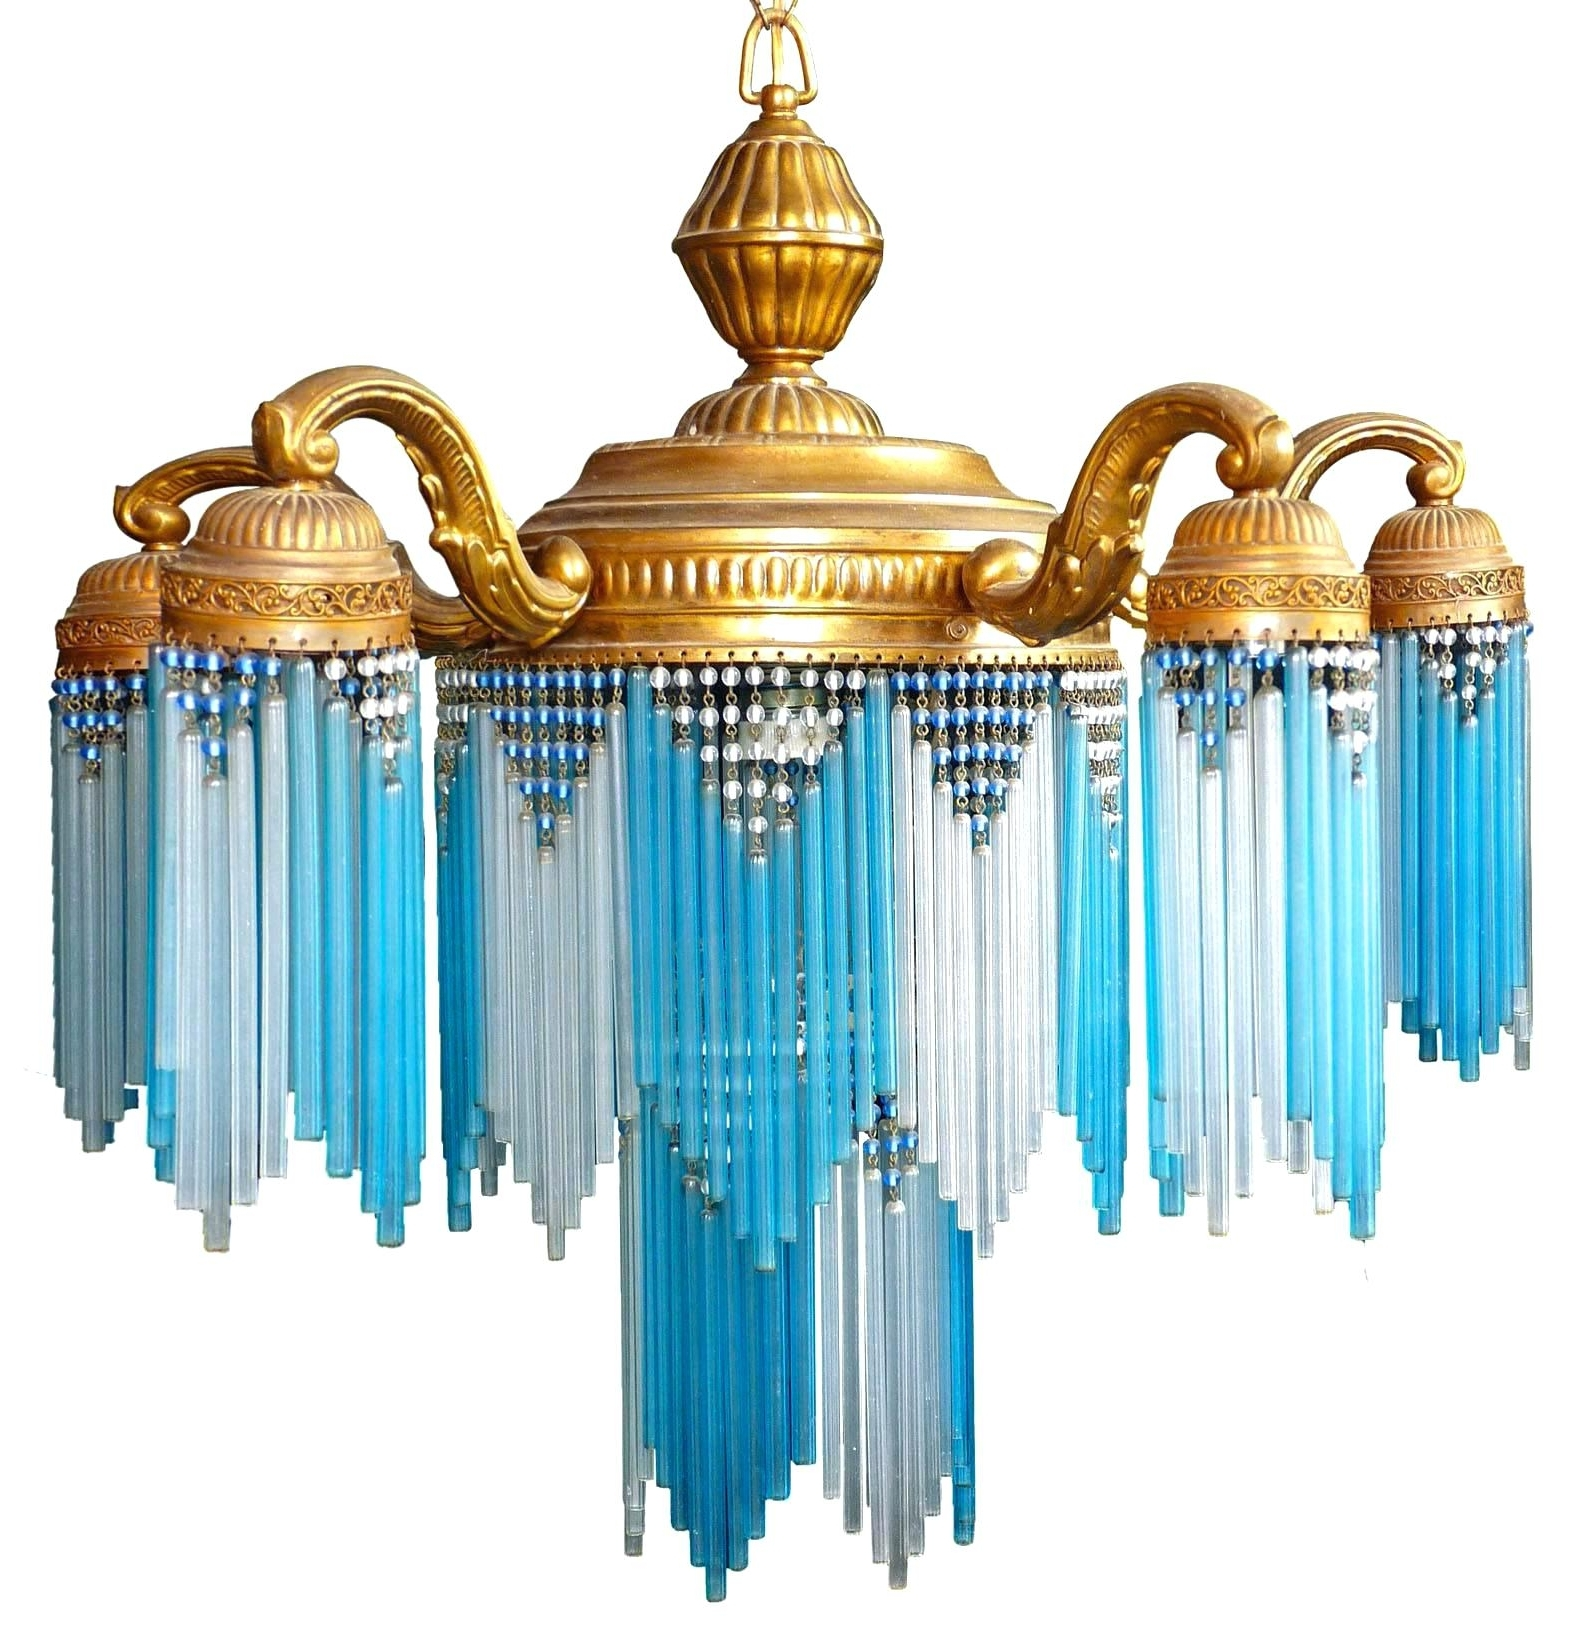 2018 Turquoise Beads Six Light Chandeliers Intended For Lighting : Regina Andrew Turquoise Chandelier Light Wood Diy Small (View 1 of 20)